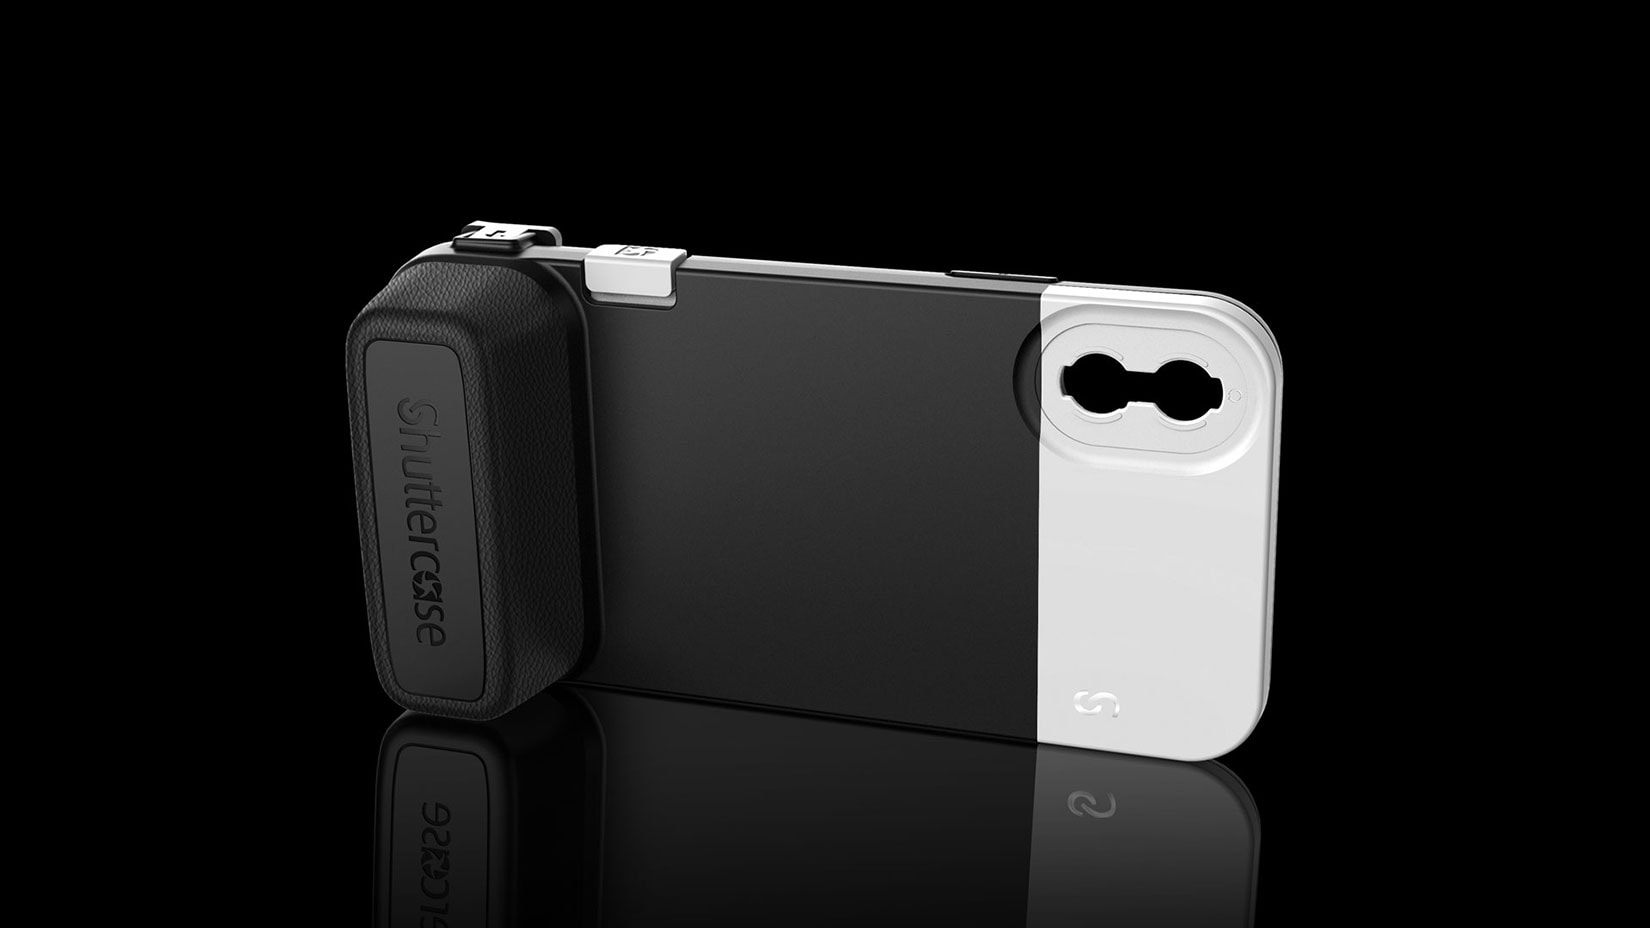 Shuttercase photo case for iPhone